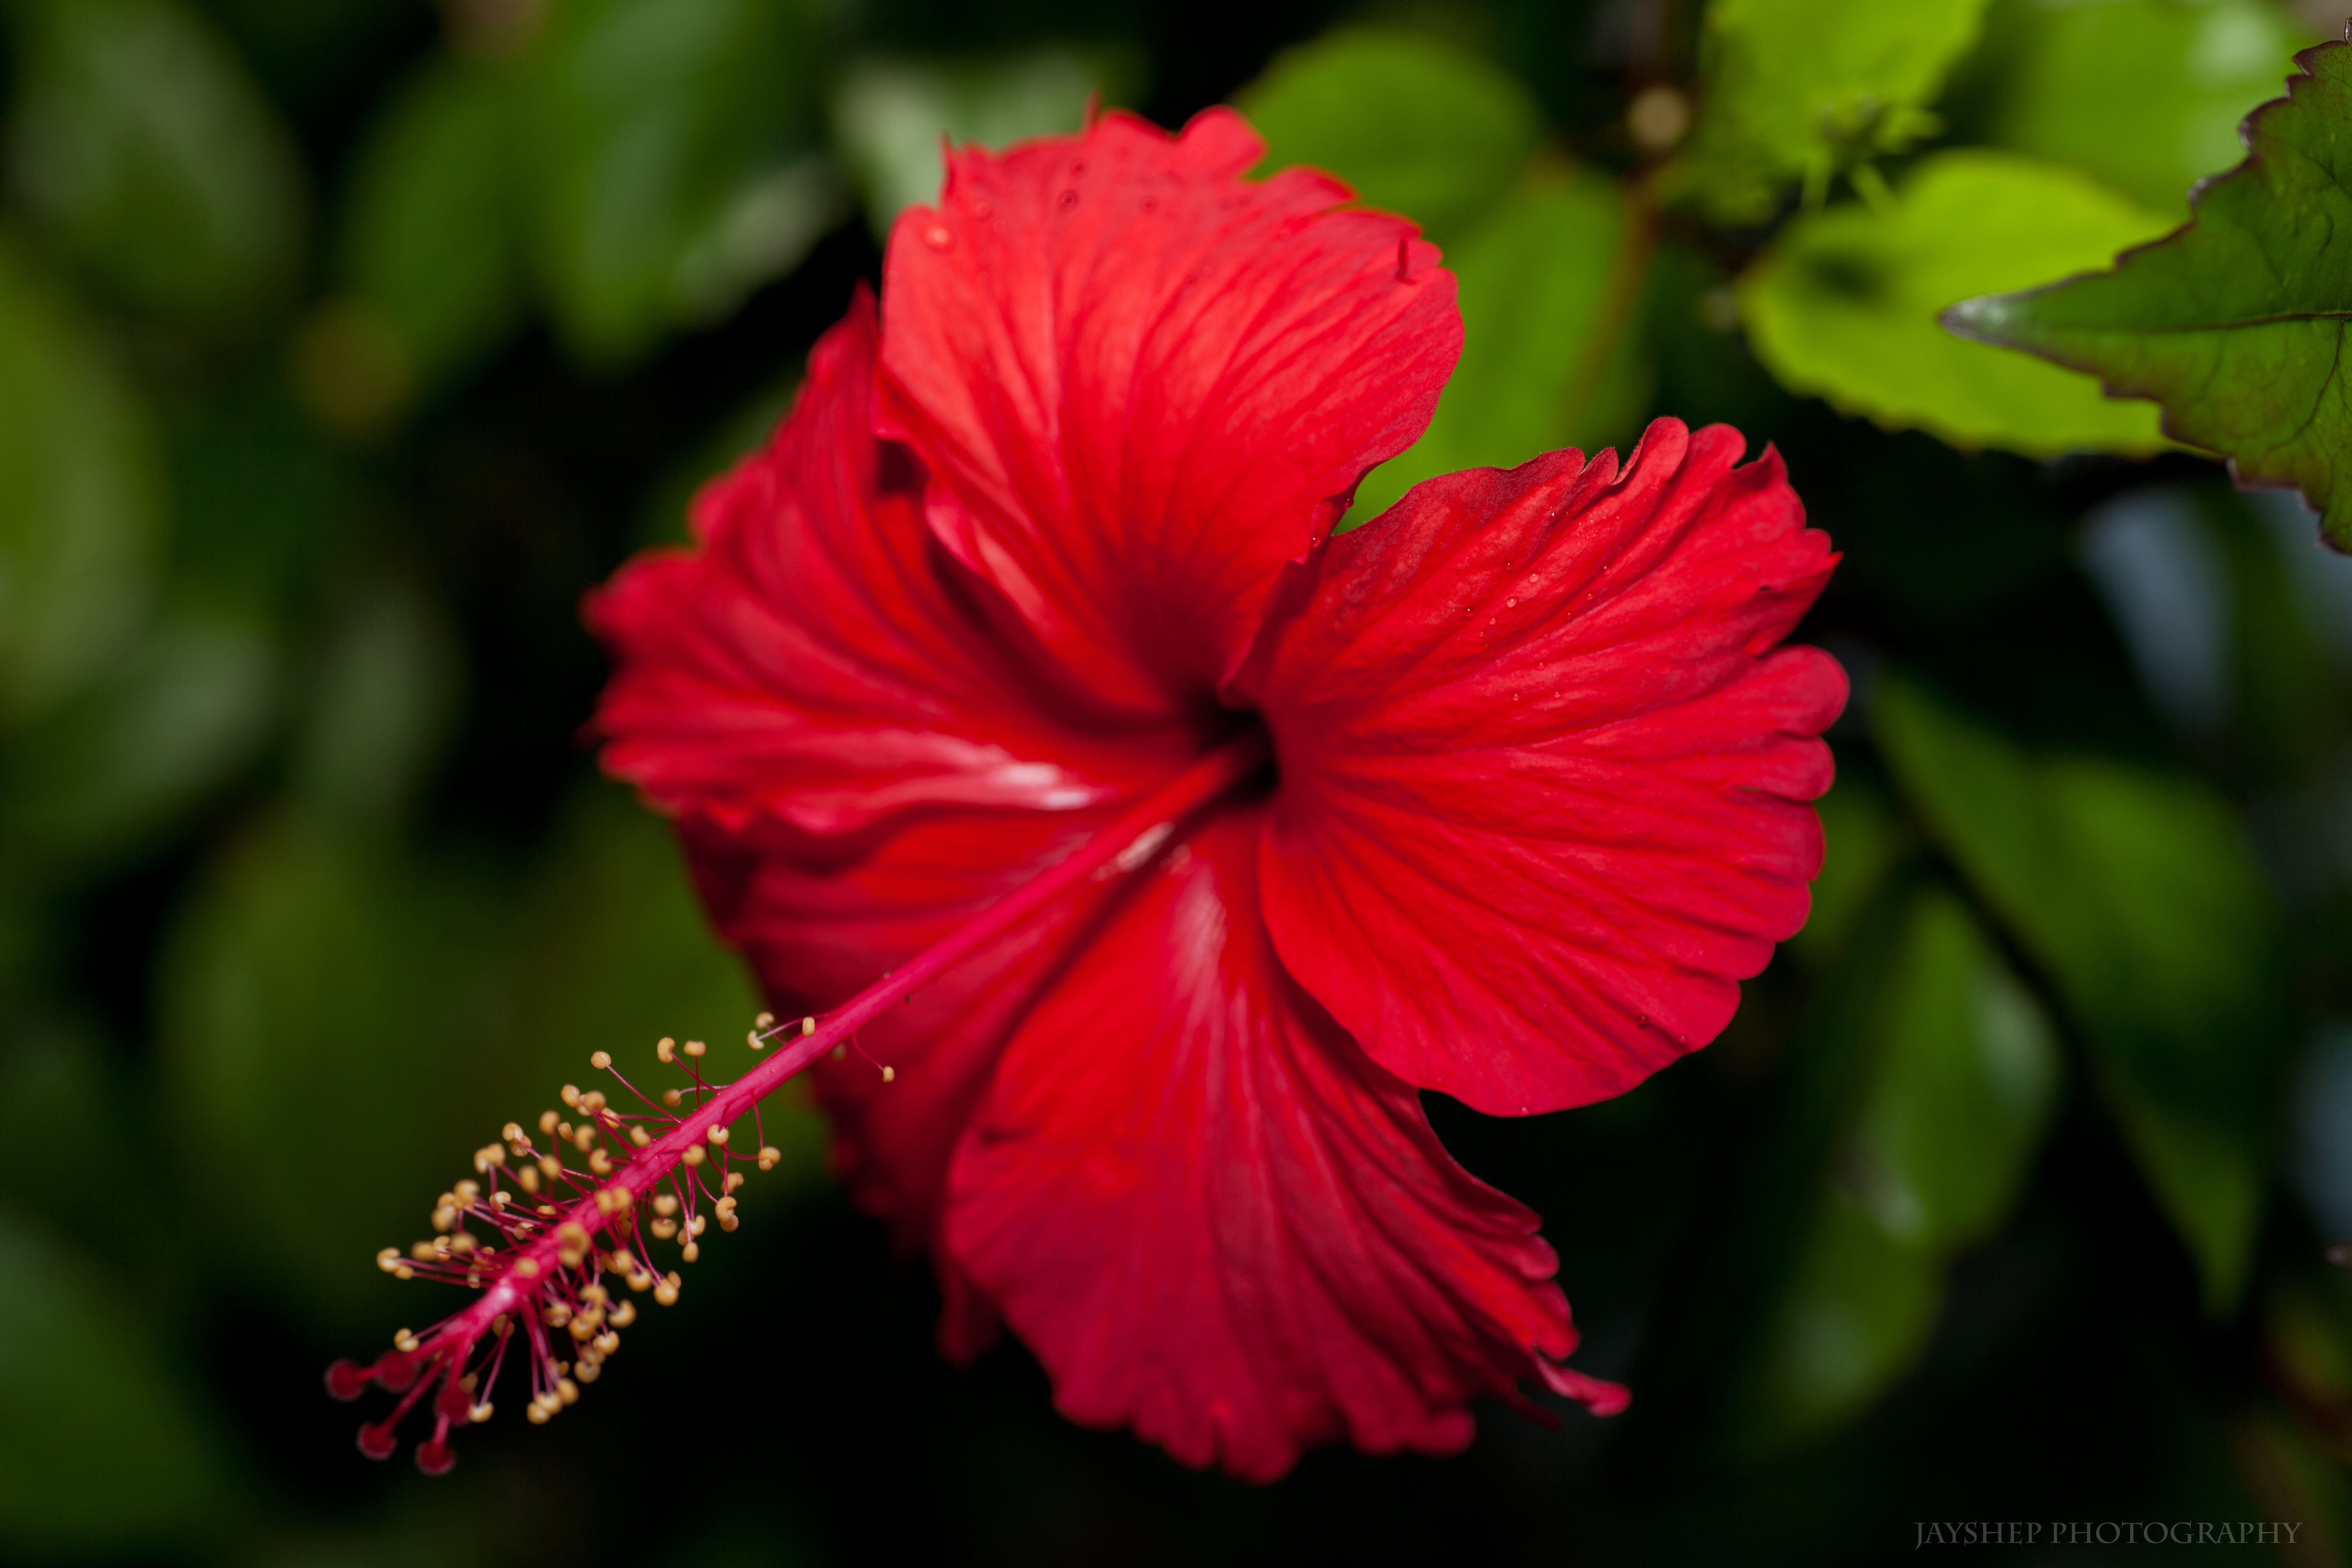 Pictures of puerto rico the hibiscus puerto ricos national pictures of puerto rico the hibiscus puerto ricos national flower izmirmasajfo Choice Image